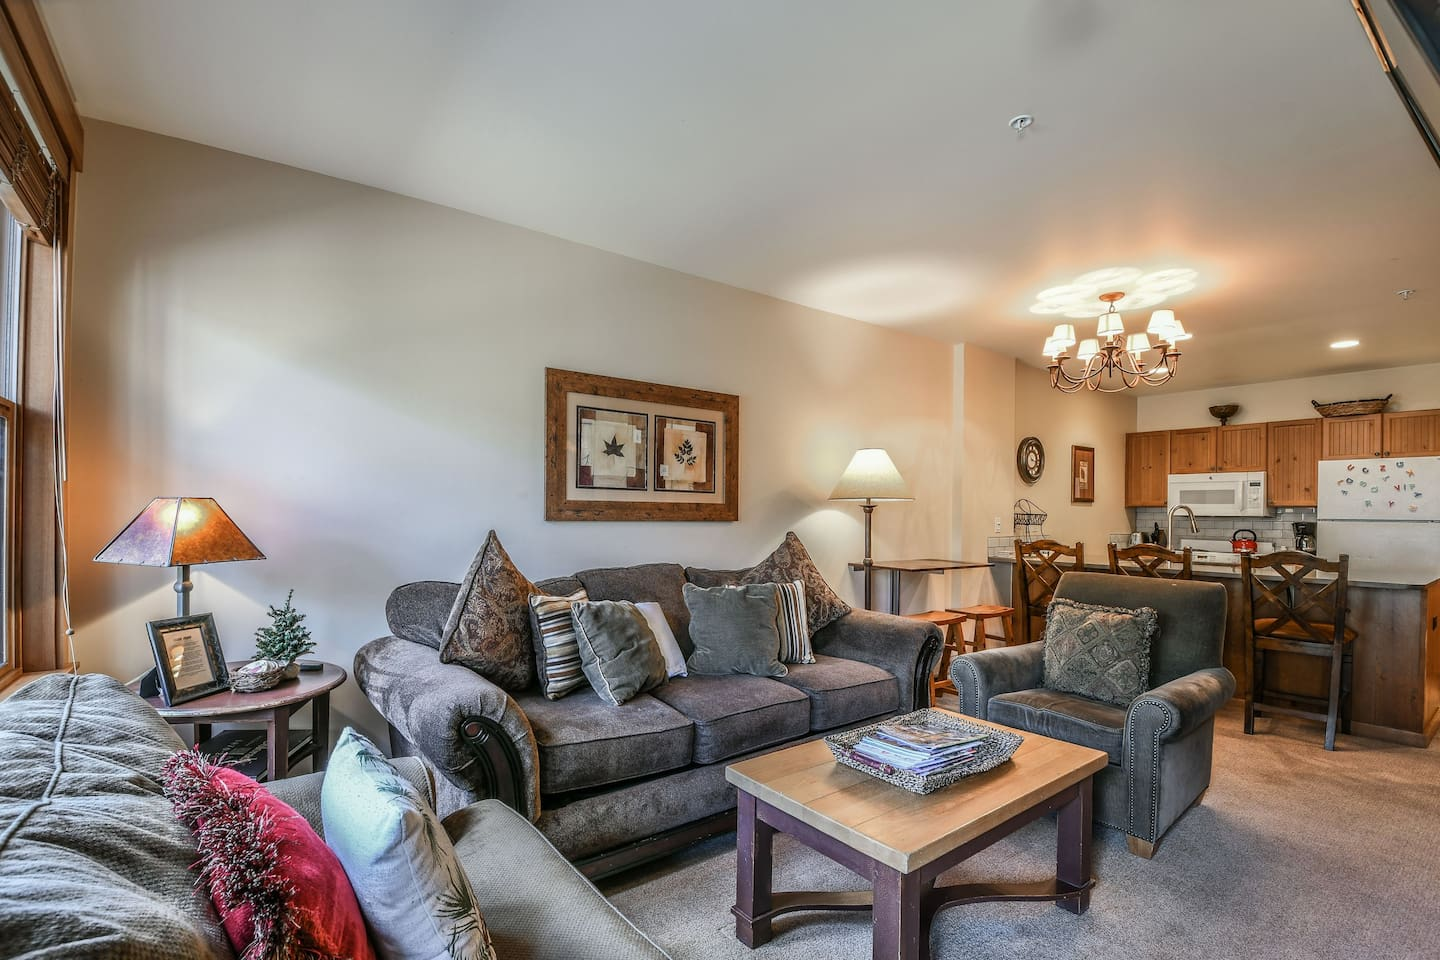 Living room with plenty of seating for everyone